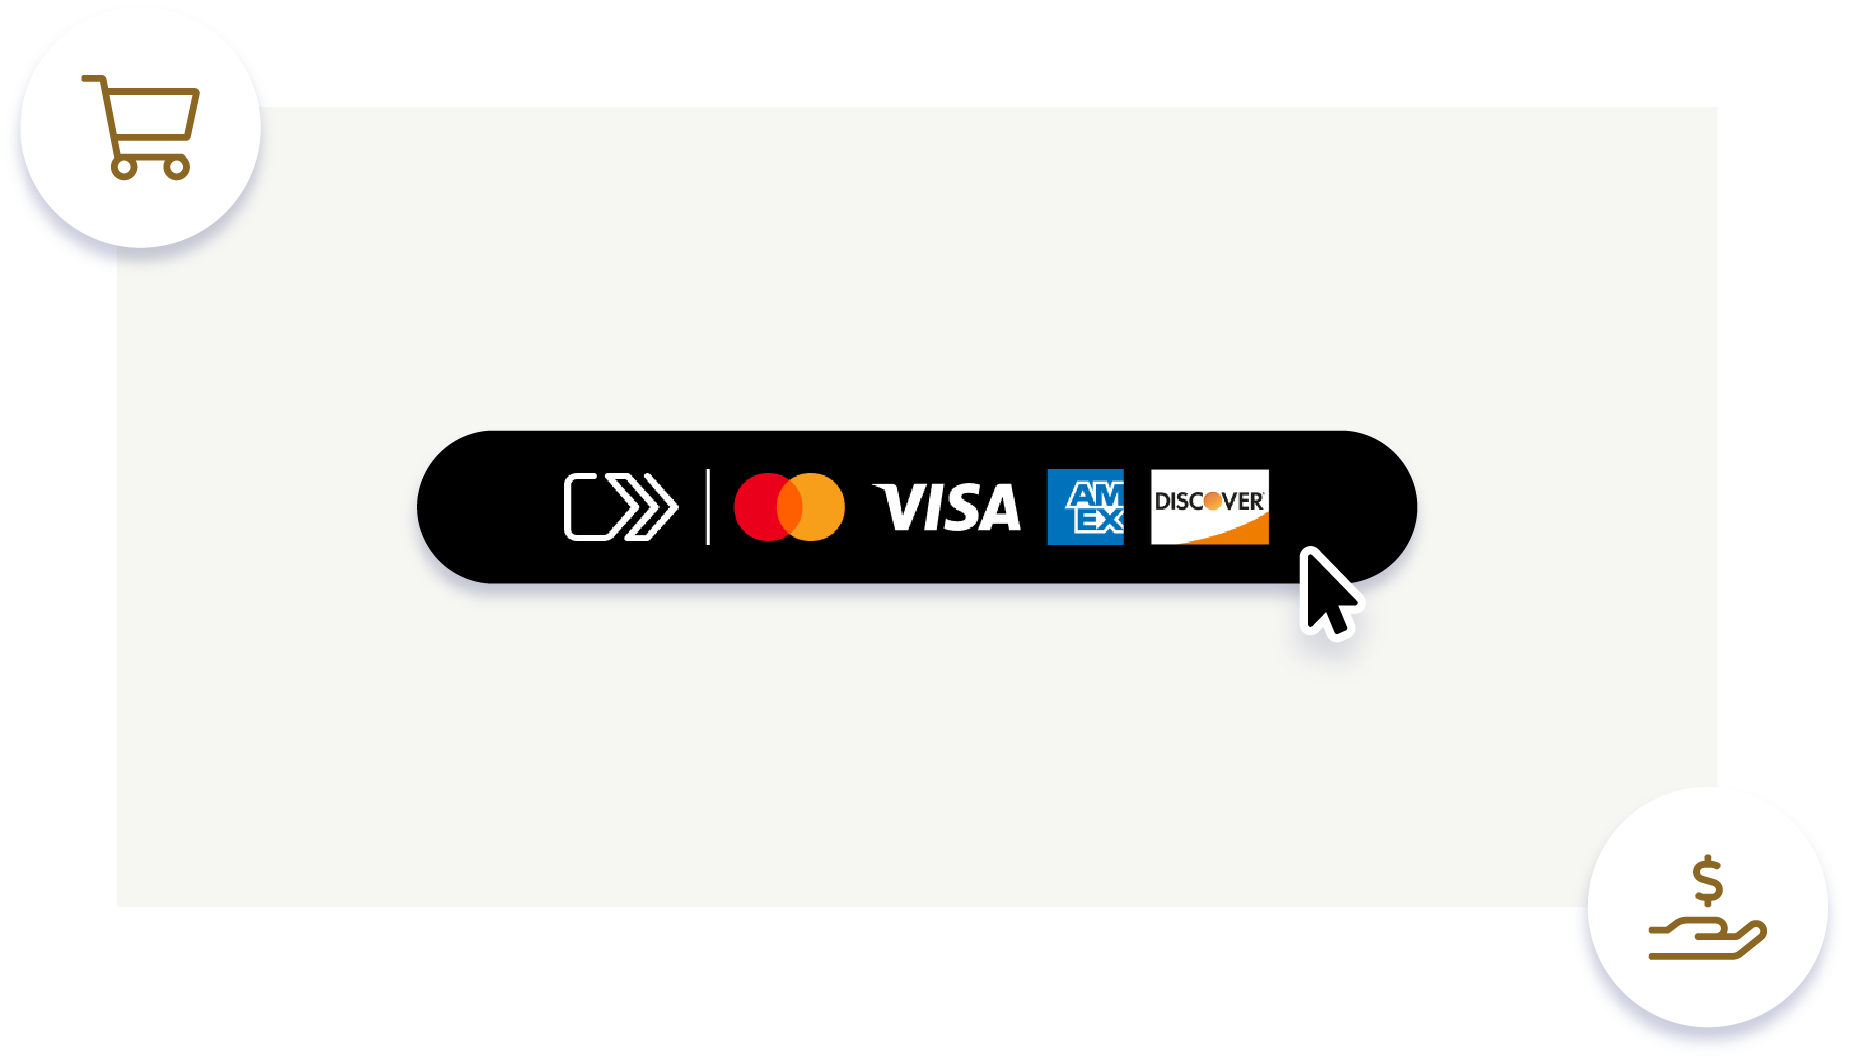 Click to Pay Graphic